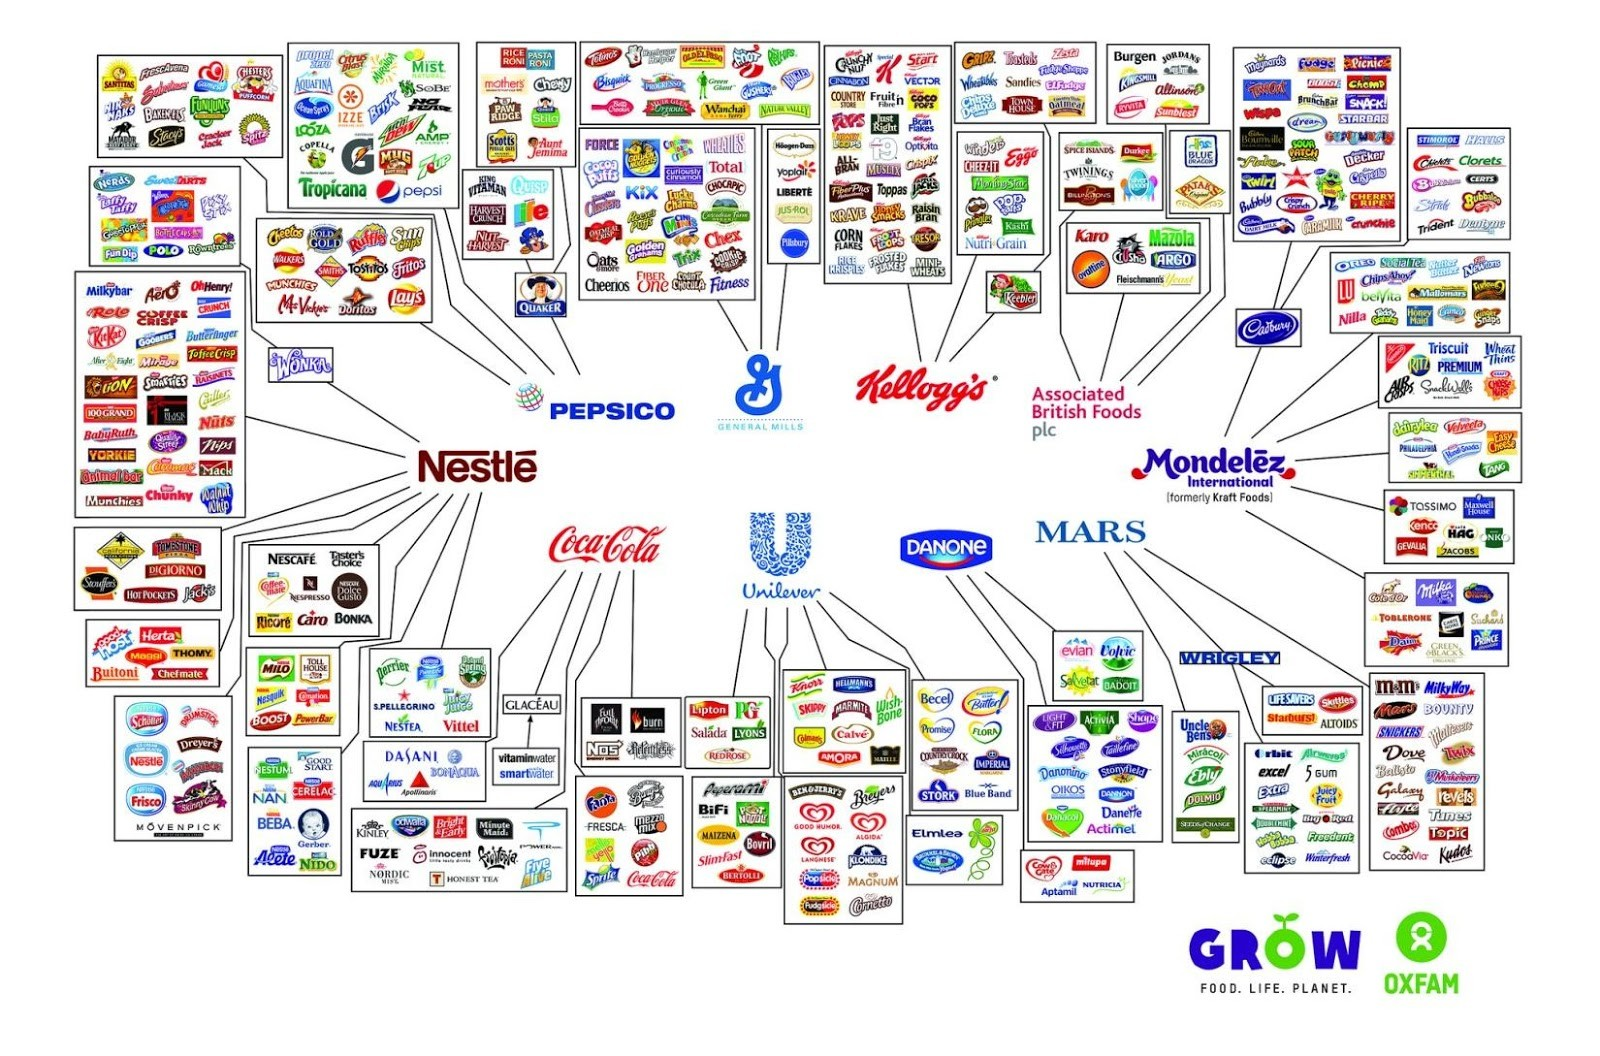 C:\Users\jimki\Documents\Green Stars Project site\Ethical Net\Big 10 food companies and their brands, from Oxfam.jpg